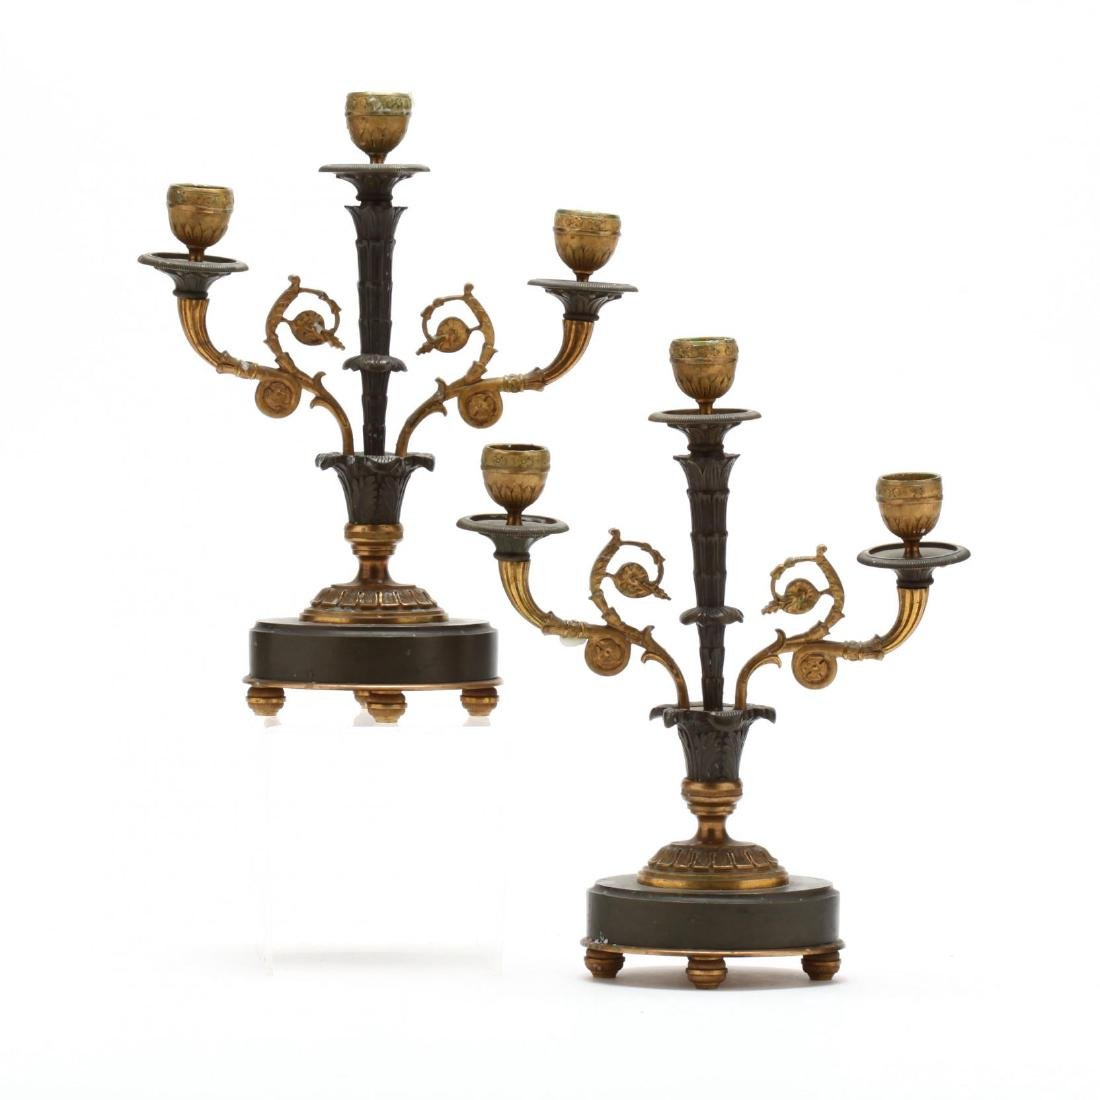 A Pair of French Empire Candelabra